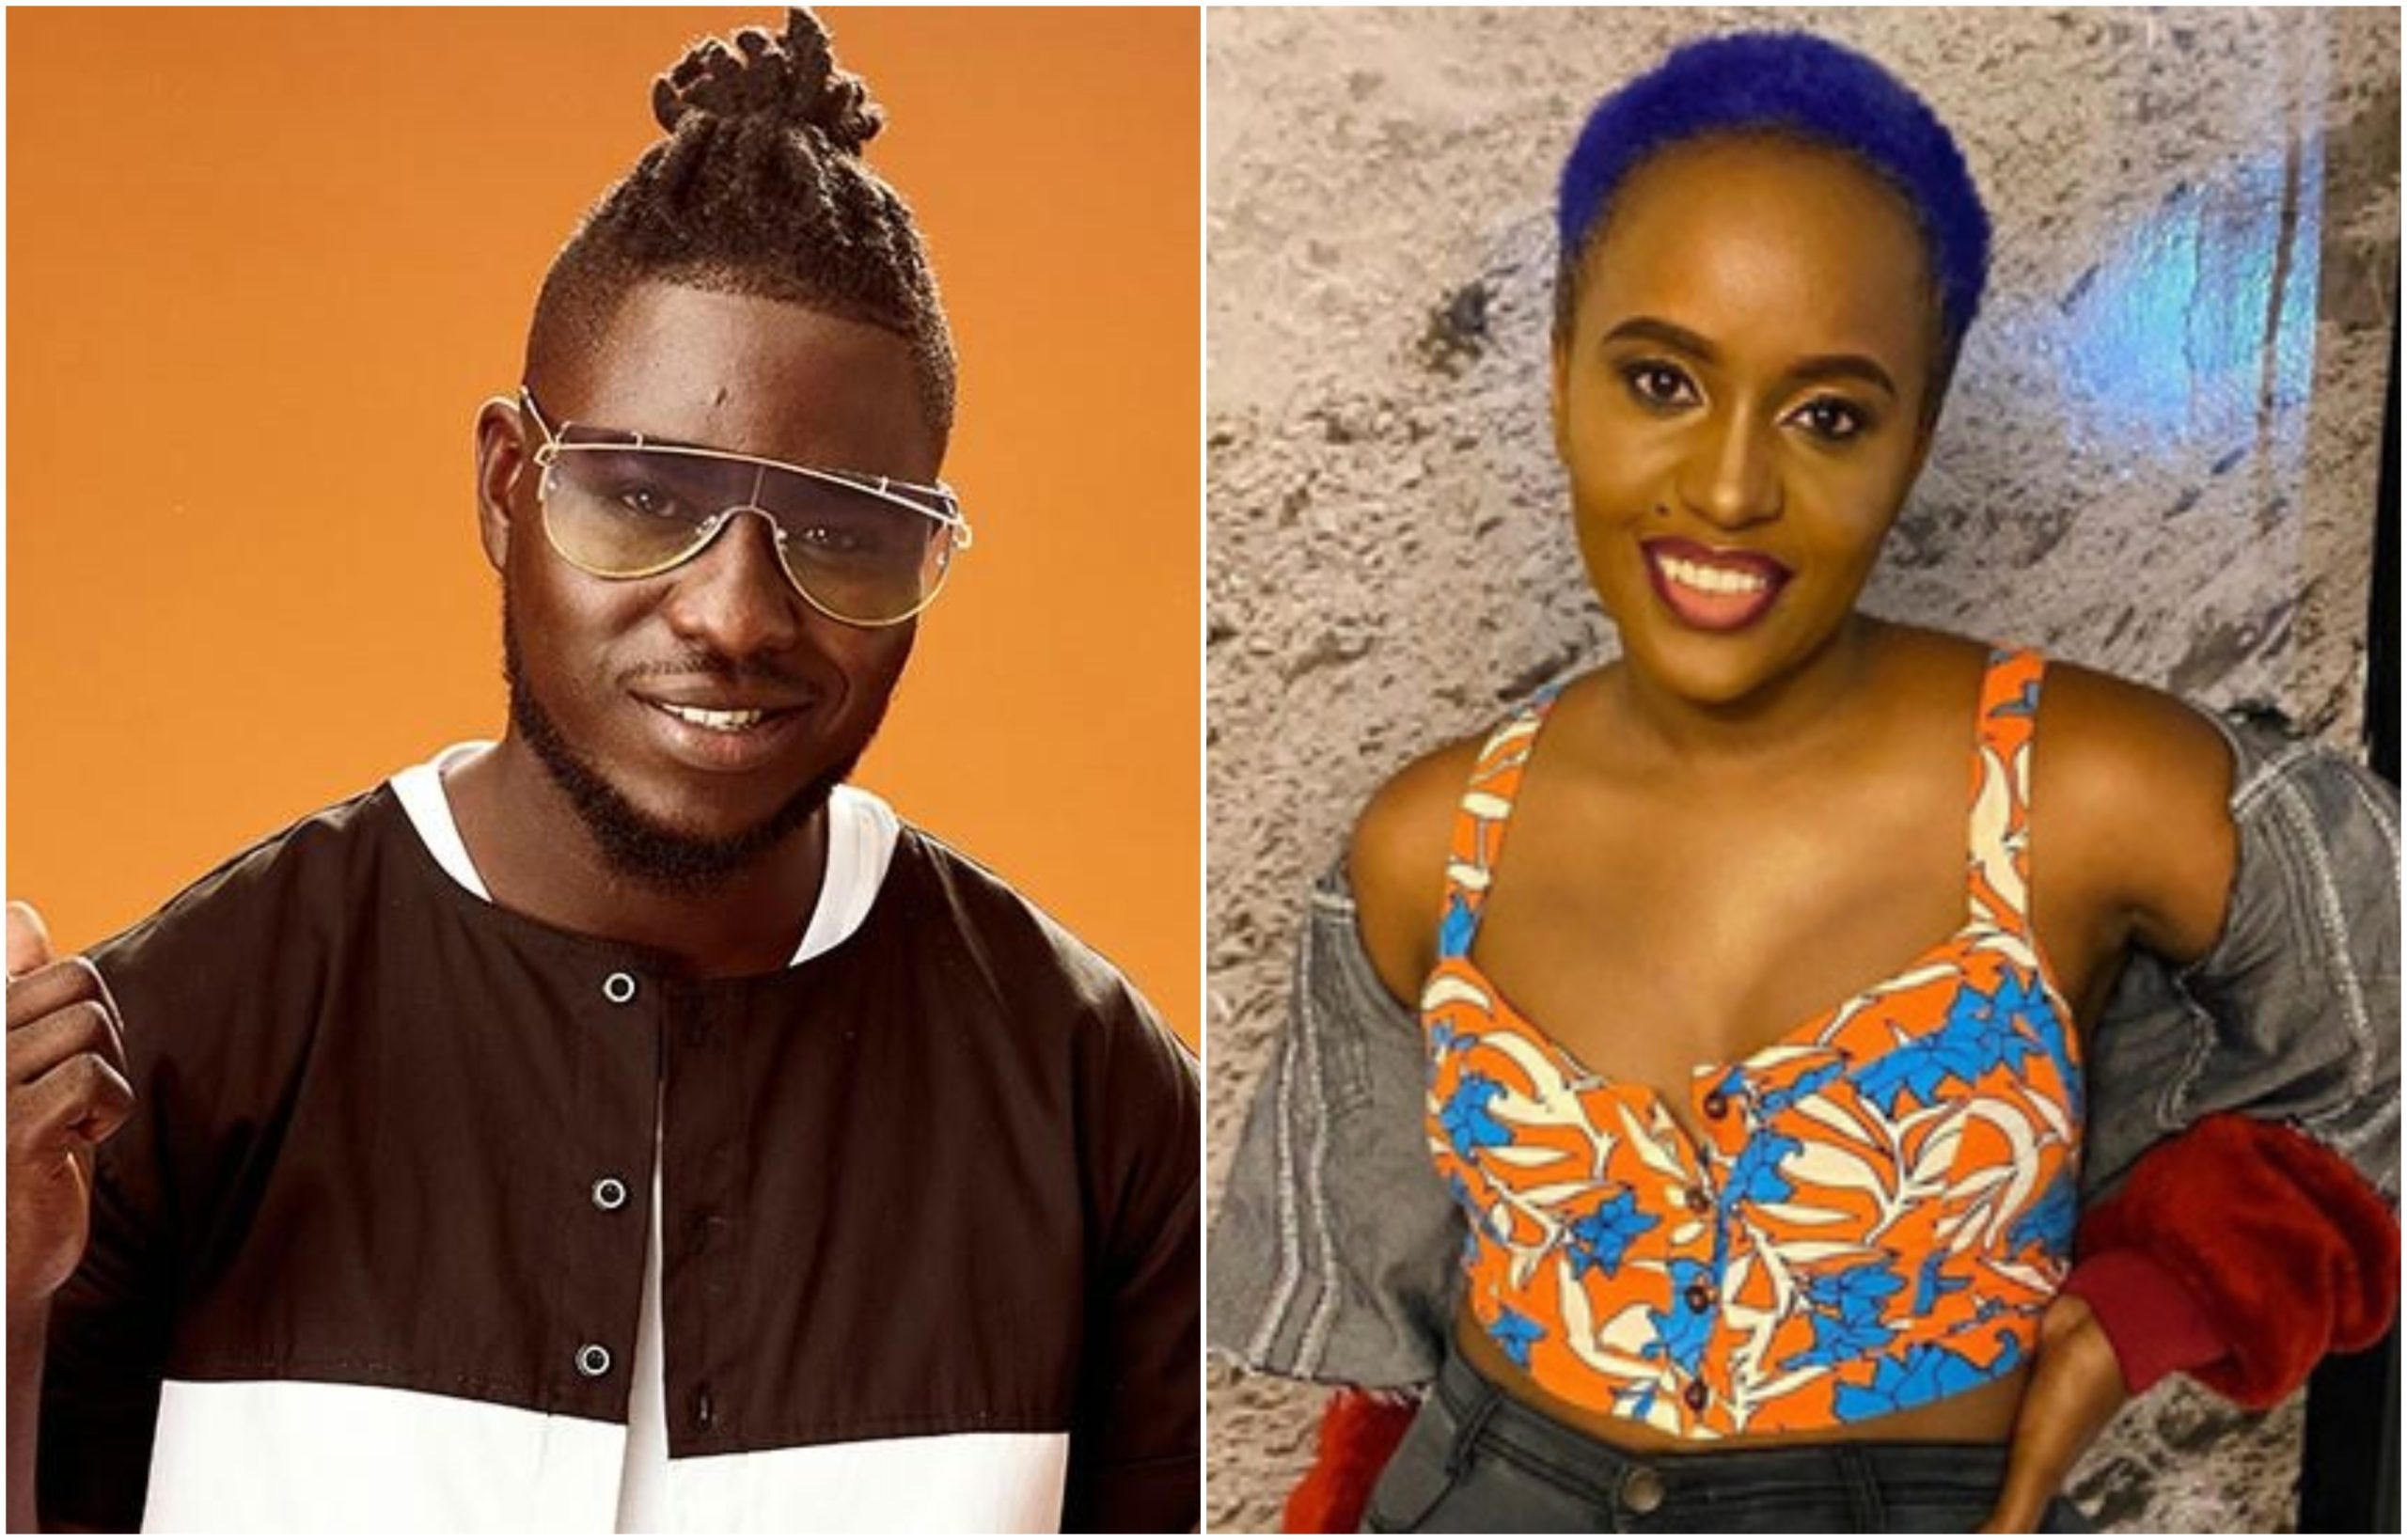 Nviiri The Storyteller's musical chemistry with Femi One is unmatched!